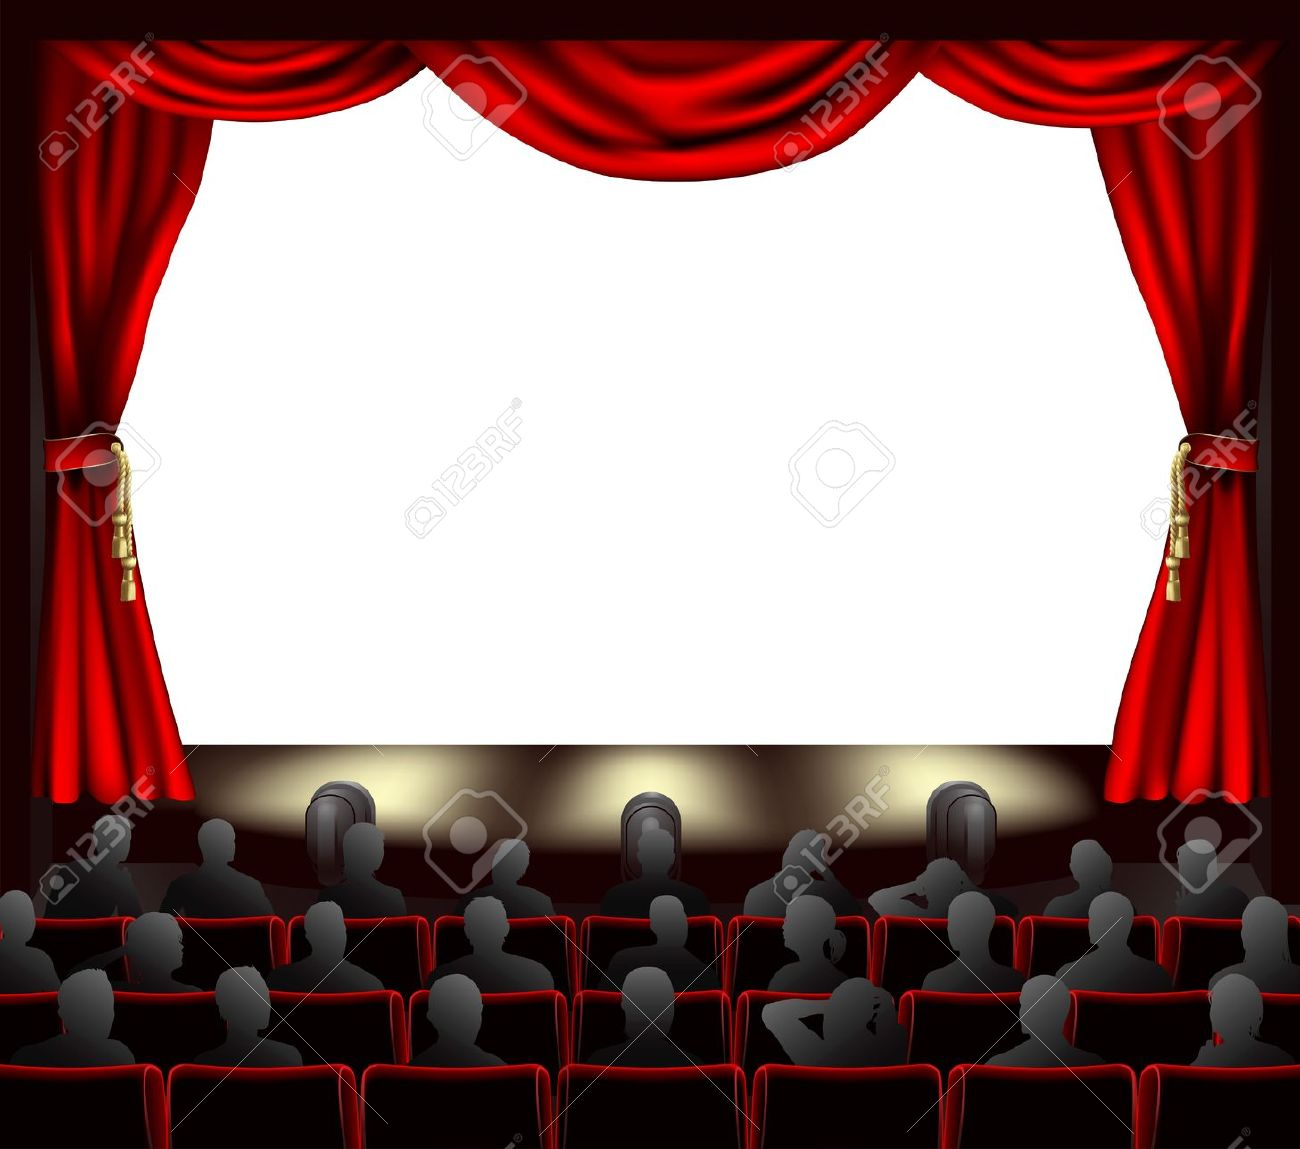 Movie curtains clipart.